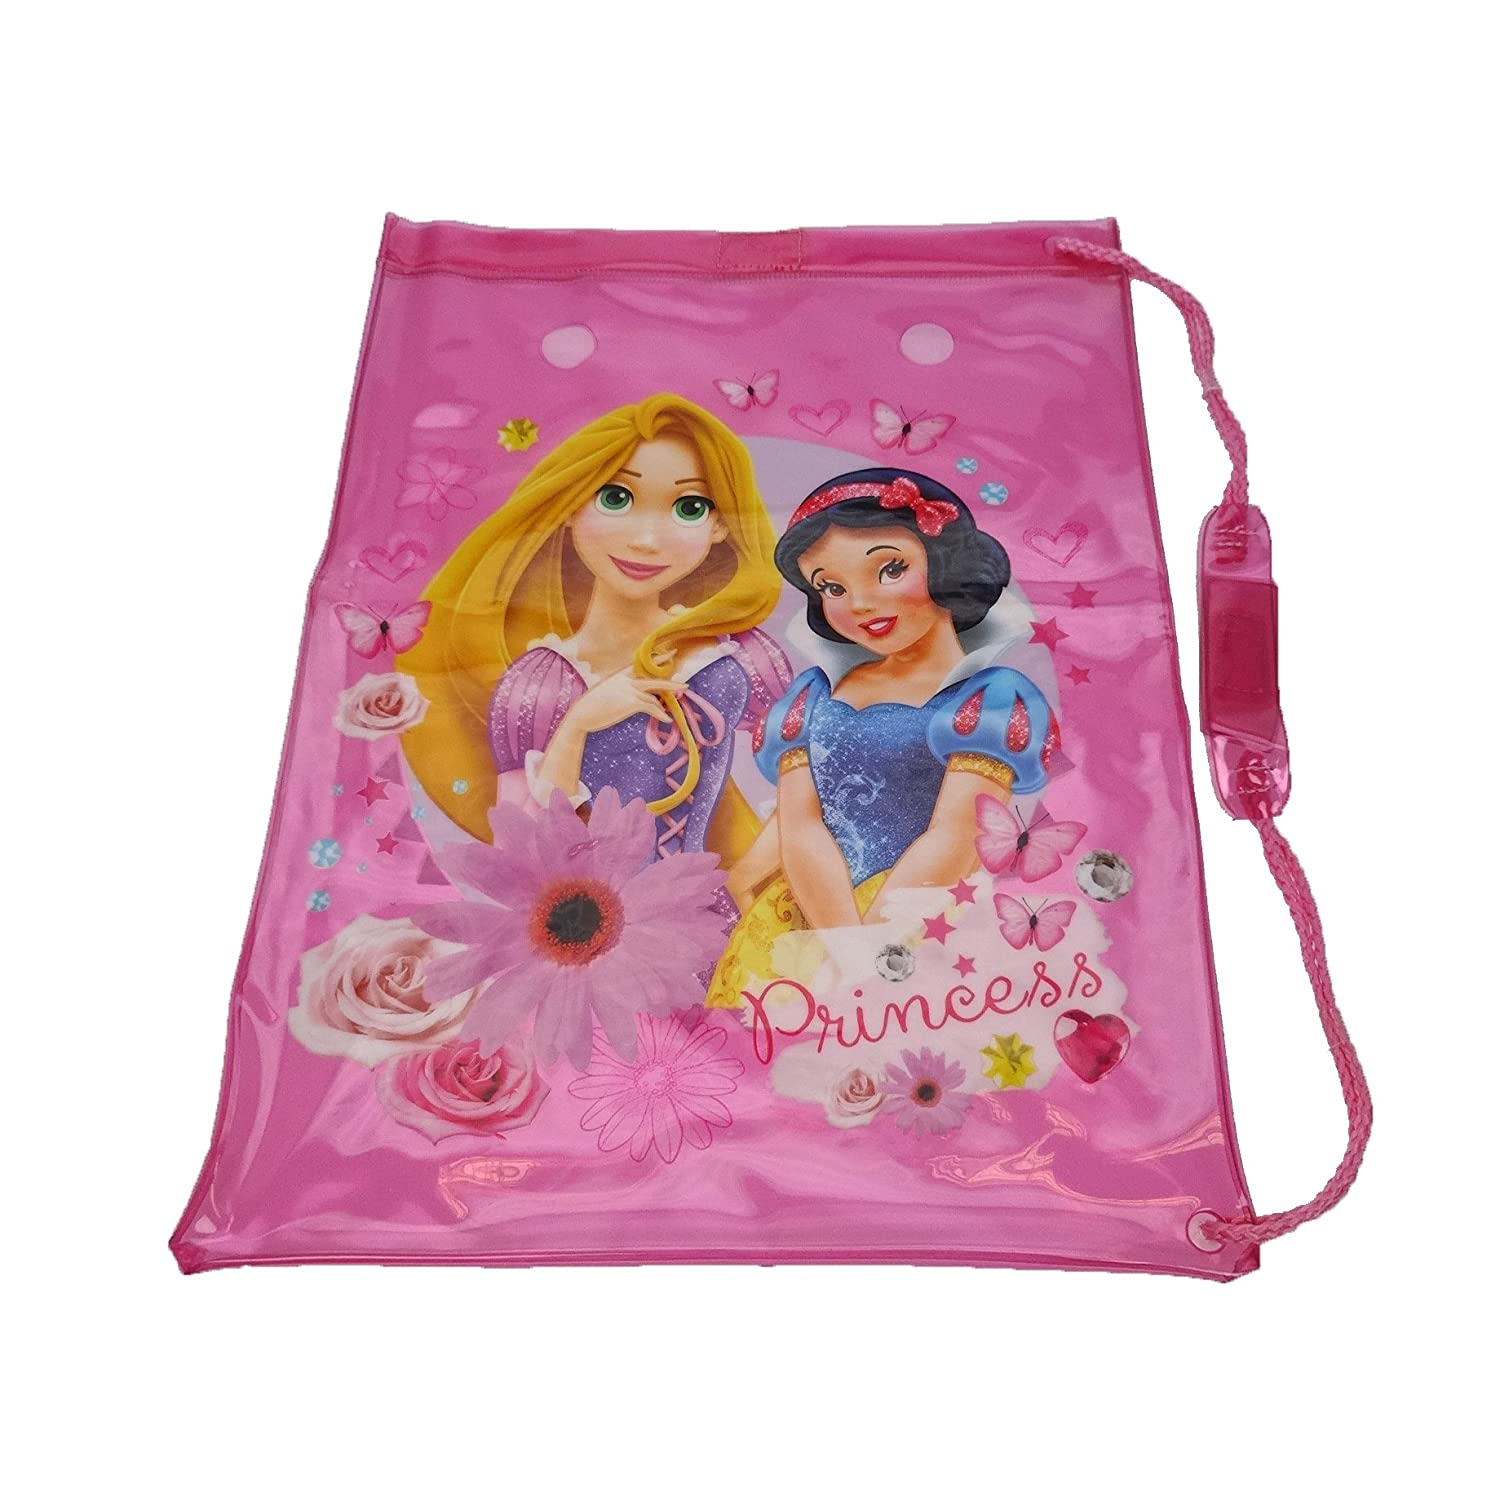 Disney Princess Kid's Sports Bag, Pink DPRIN002018